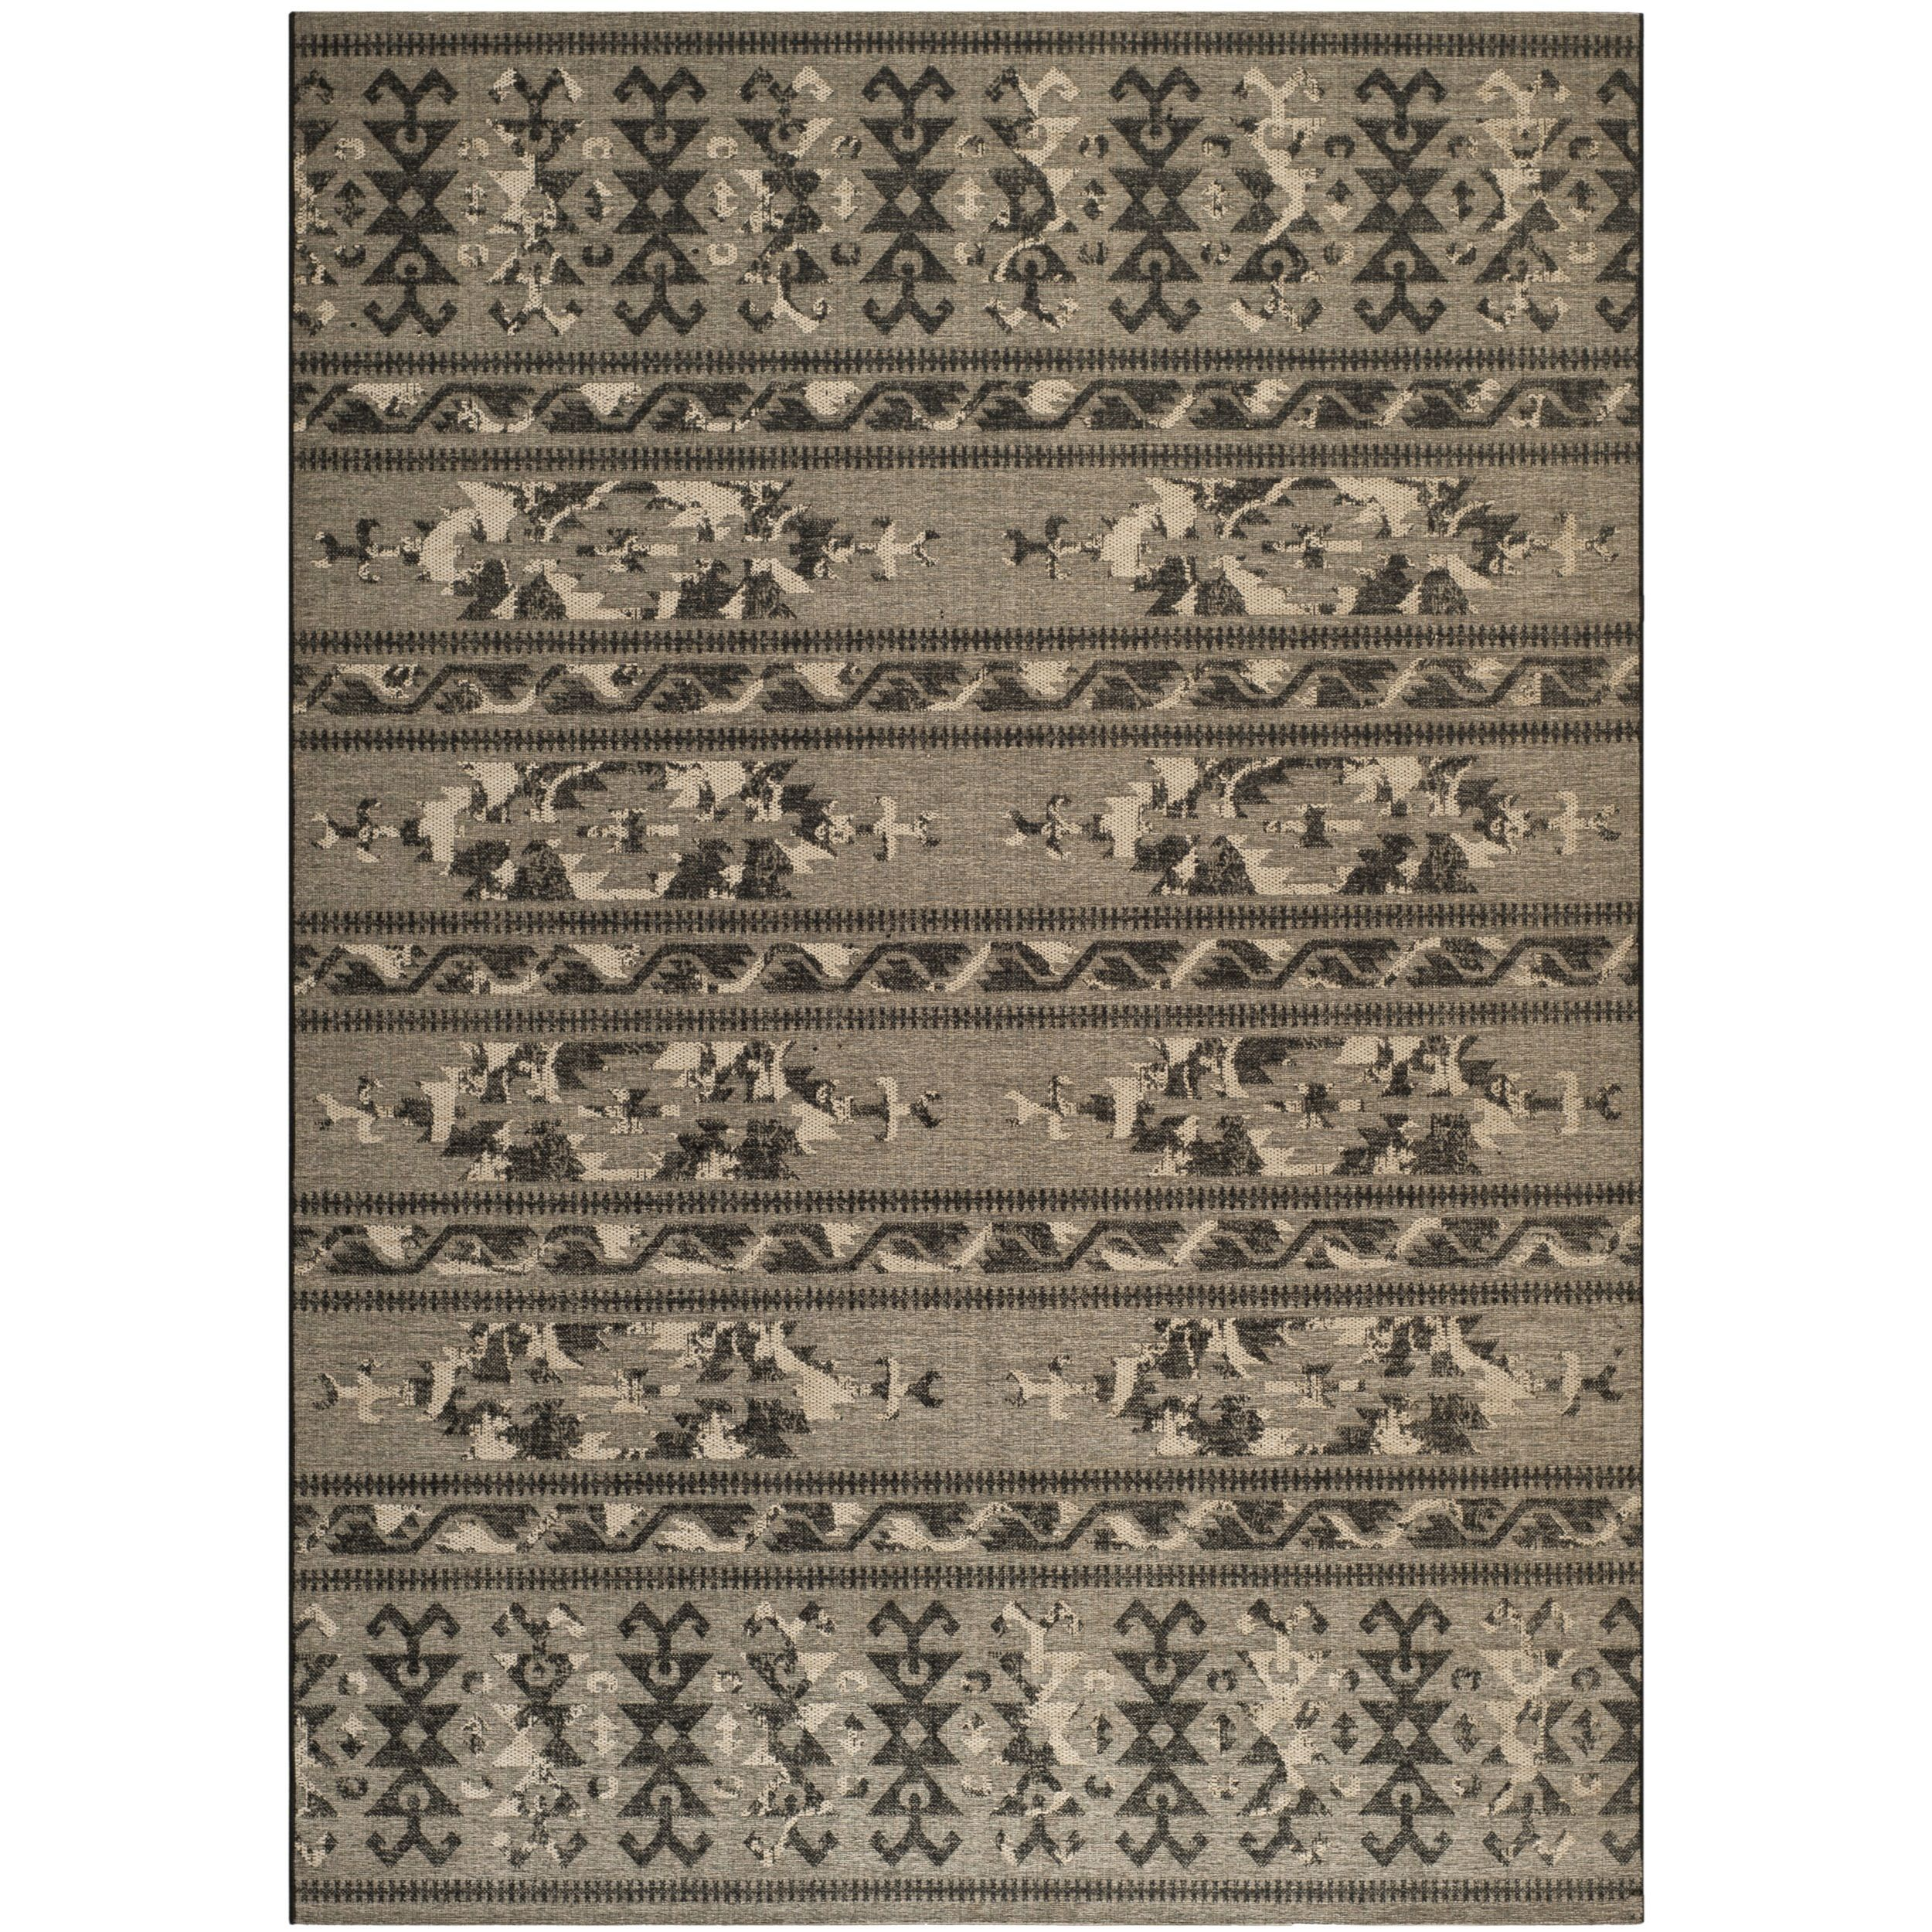 Safavieh Palazzo Black/ Beige Over-dyed Chenille Rug (8' x 11') (PAL125-56C2-8), Brown, Size 8' x 11'